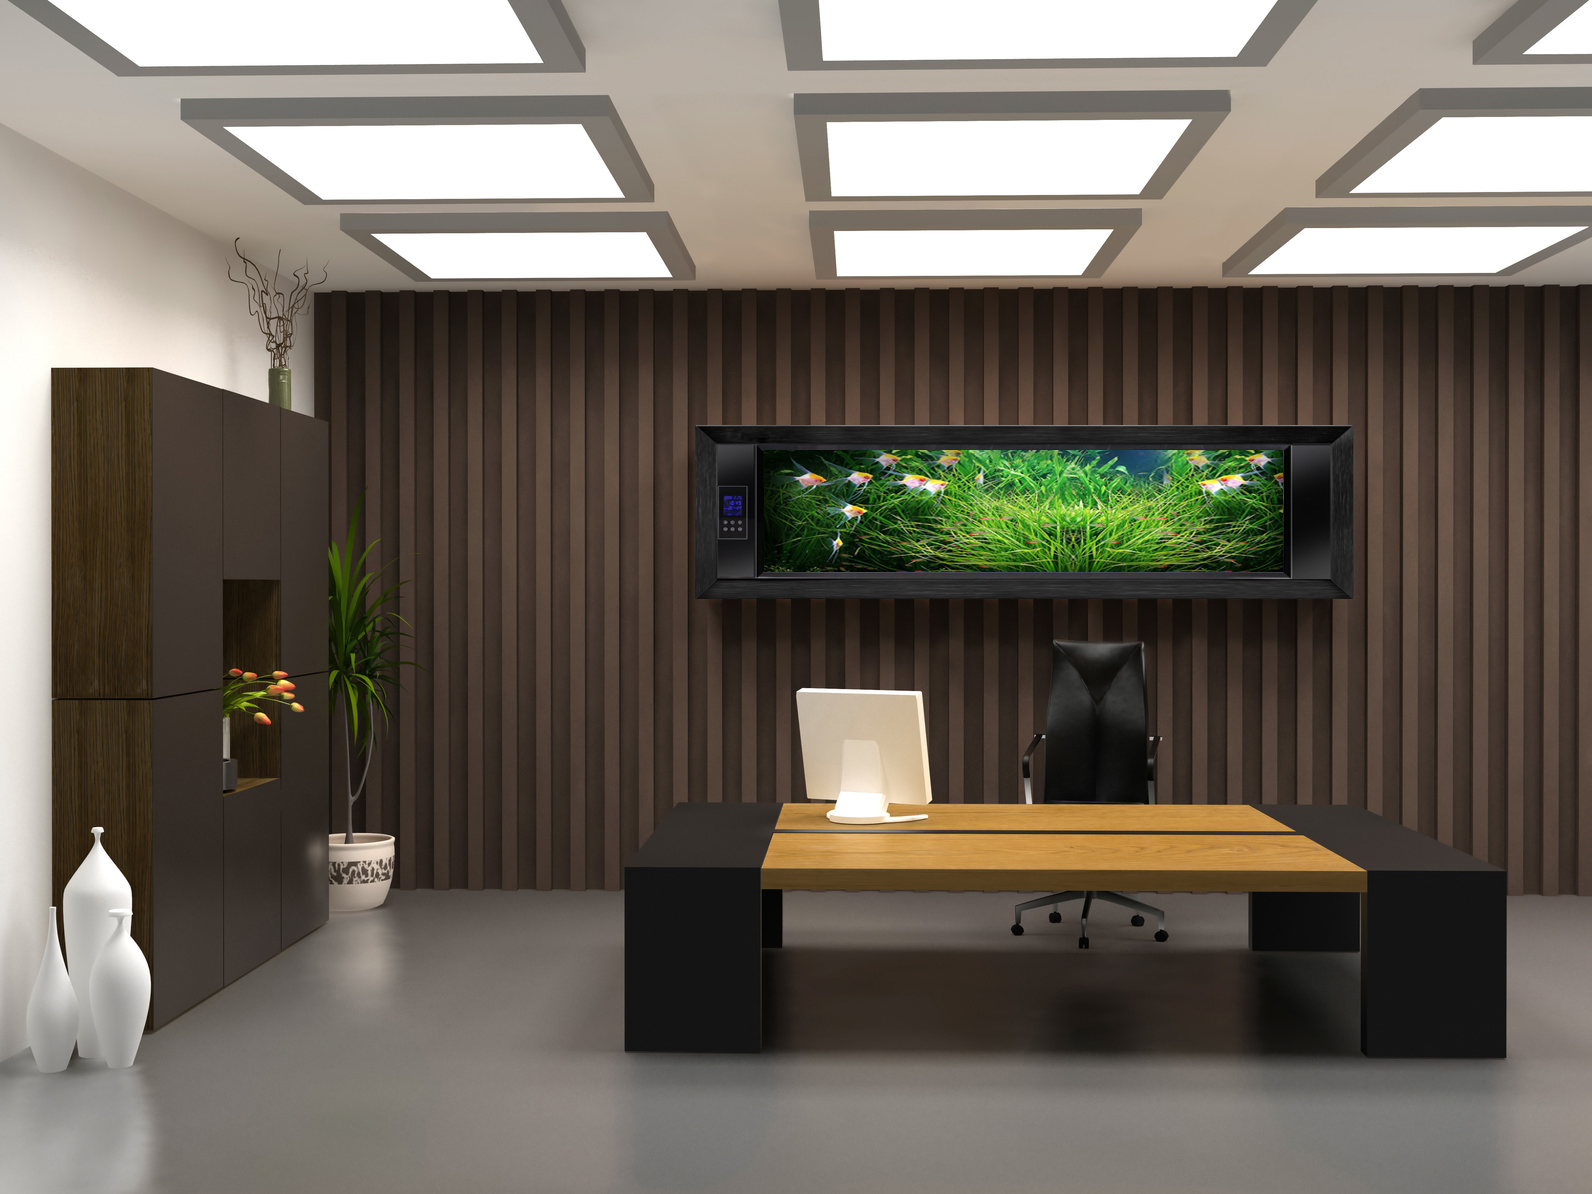 Elegant ceo office design bellisima for Office interior design